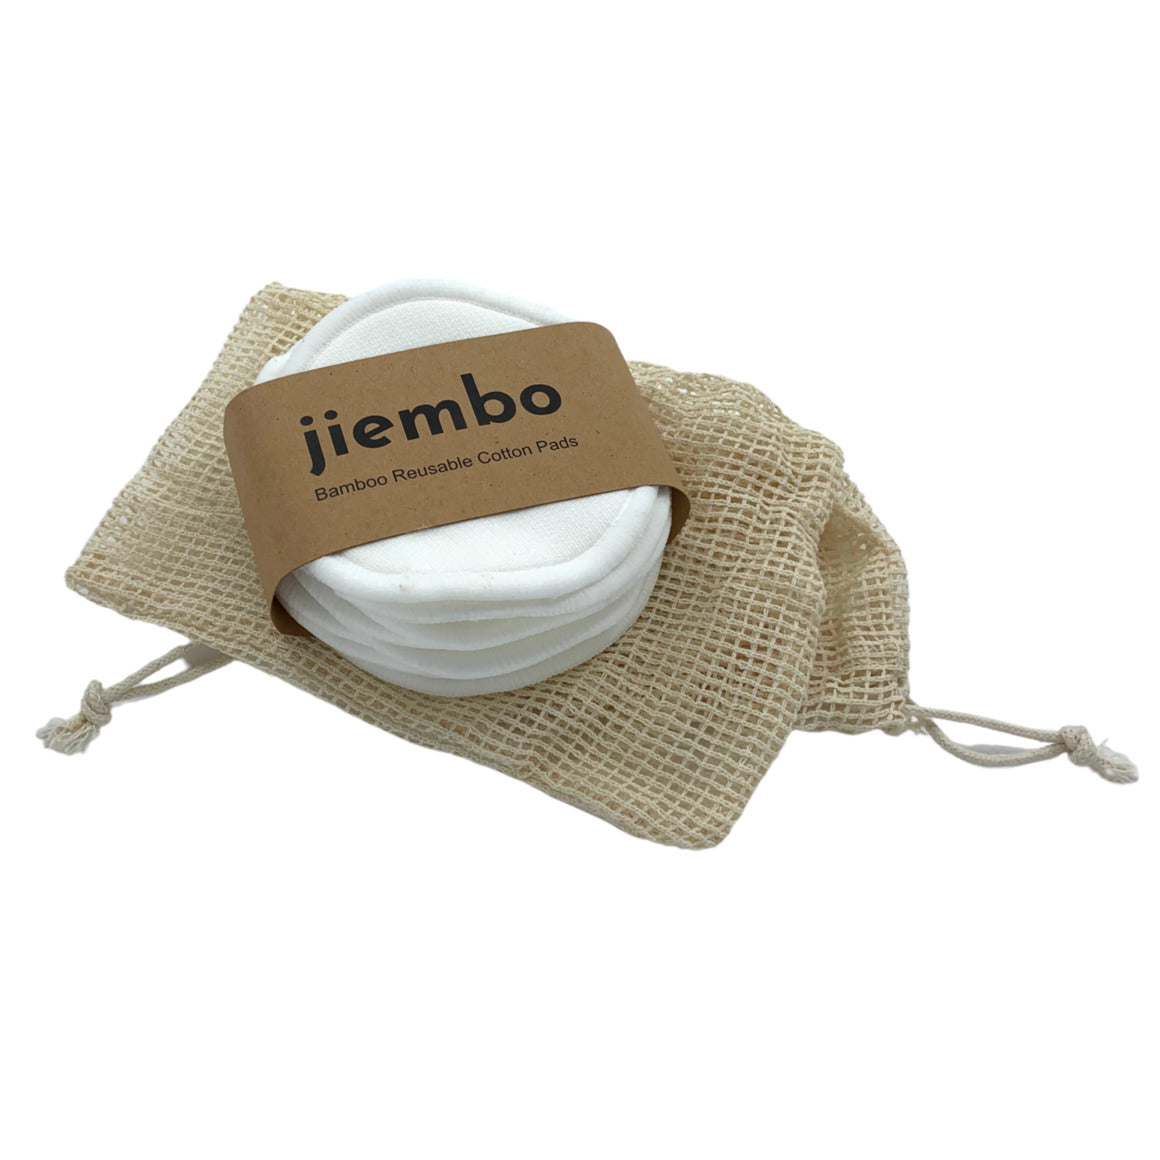 Reusable Bamboo Make Up Remover Cotton Pads